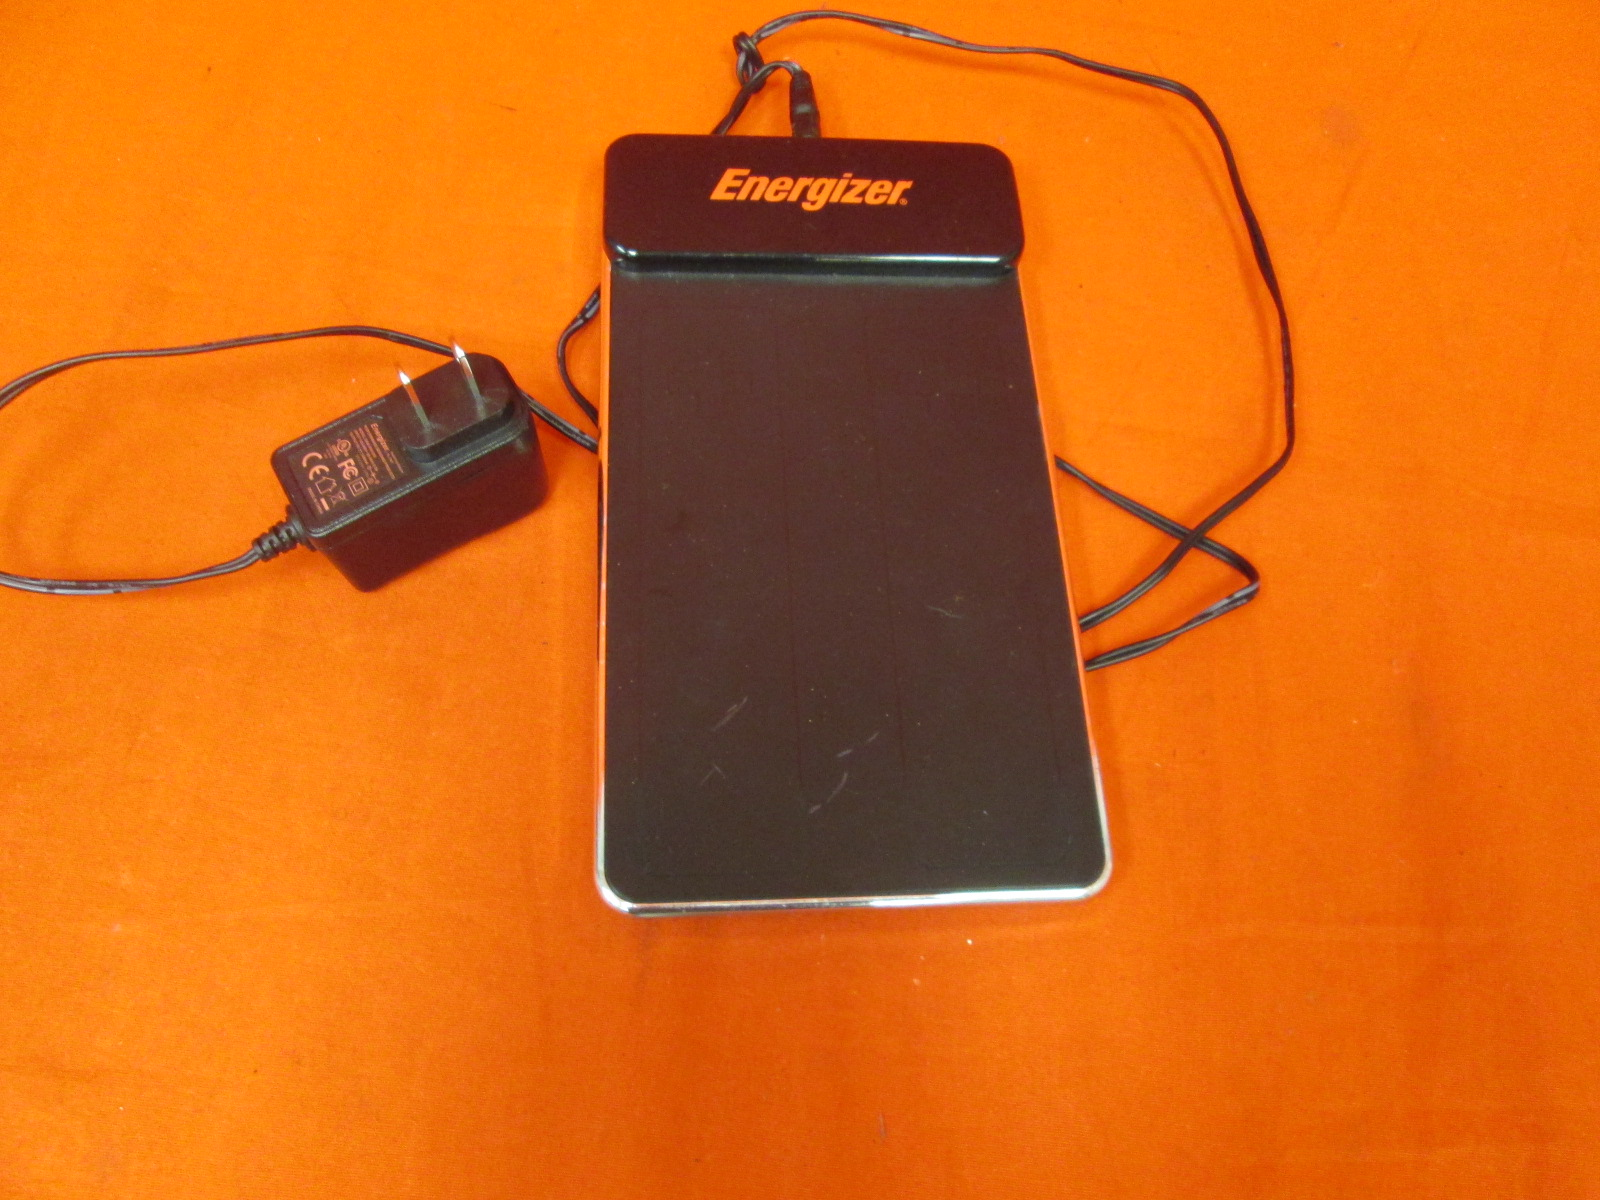 Energizer PL-7581 Flat Panel 2X Induction Charger For Wii